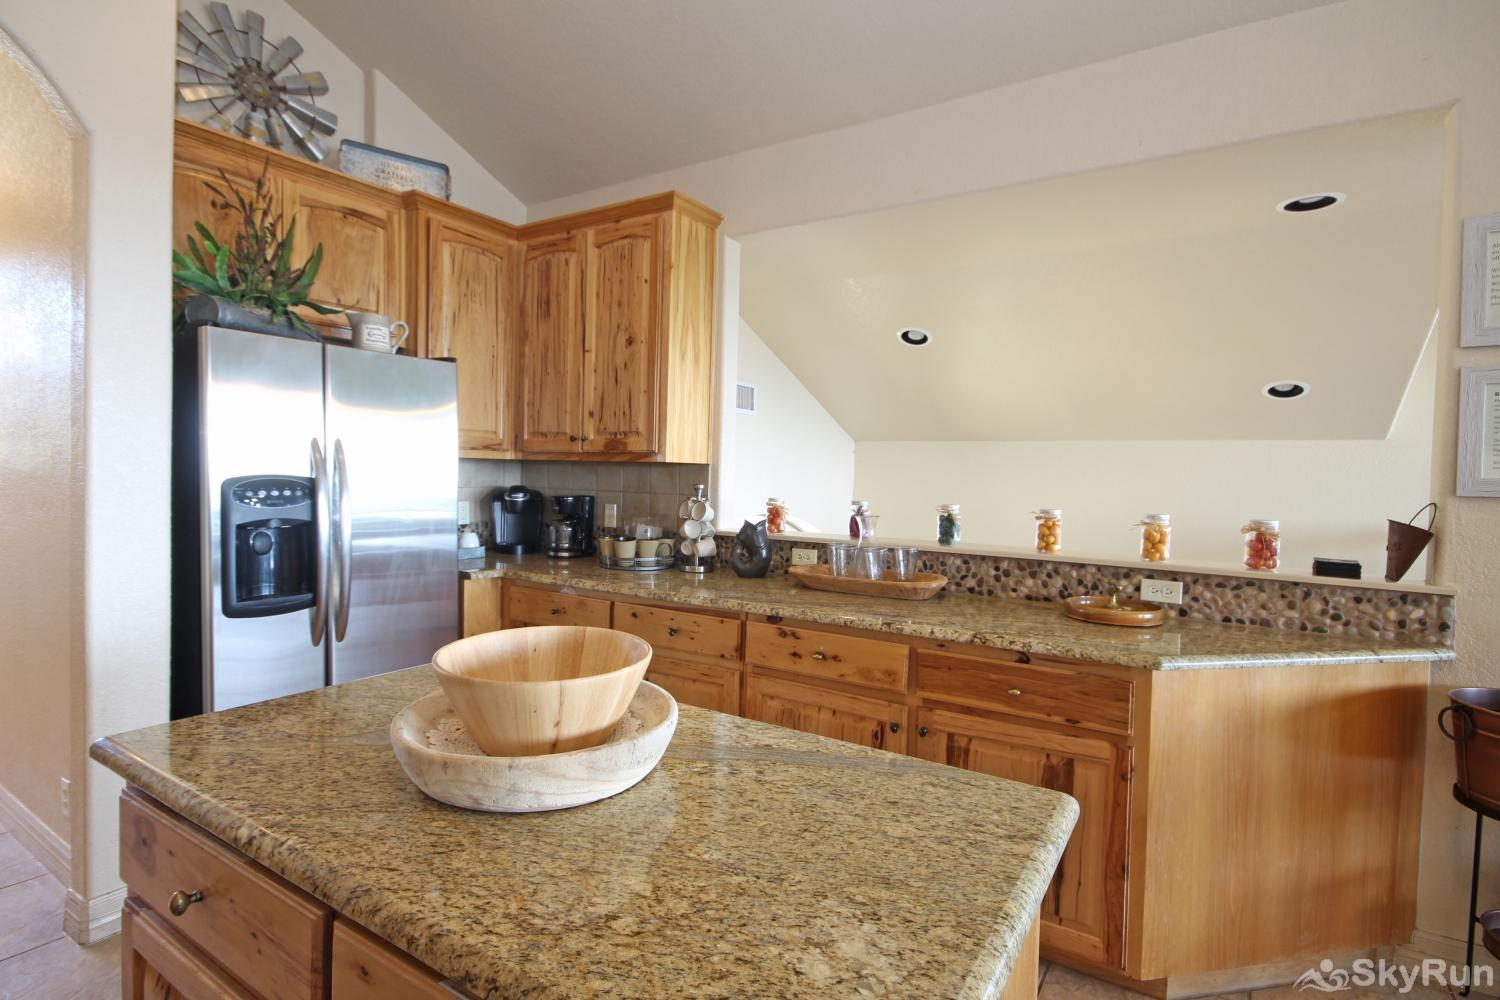 BELLA'S COVE Stainless steel appliances and granite counters in kitchen